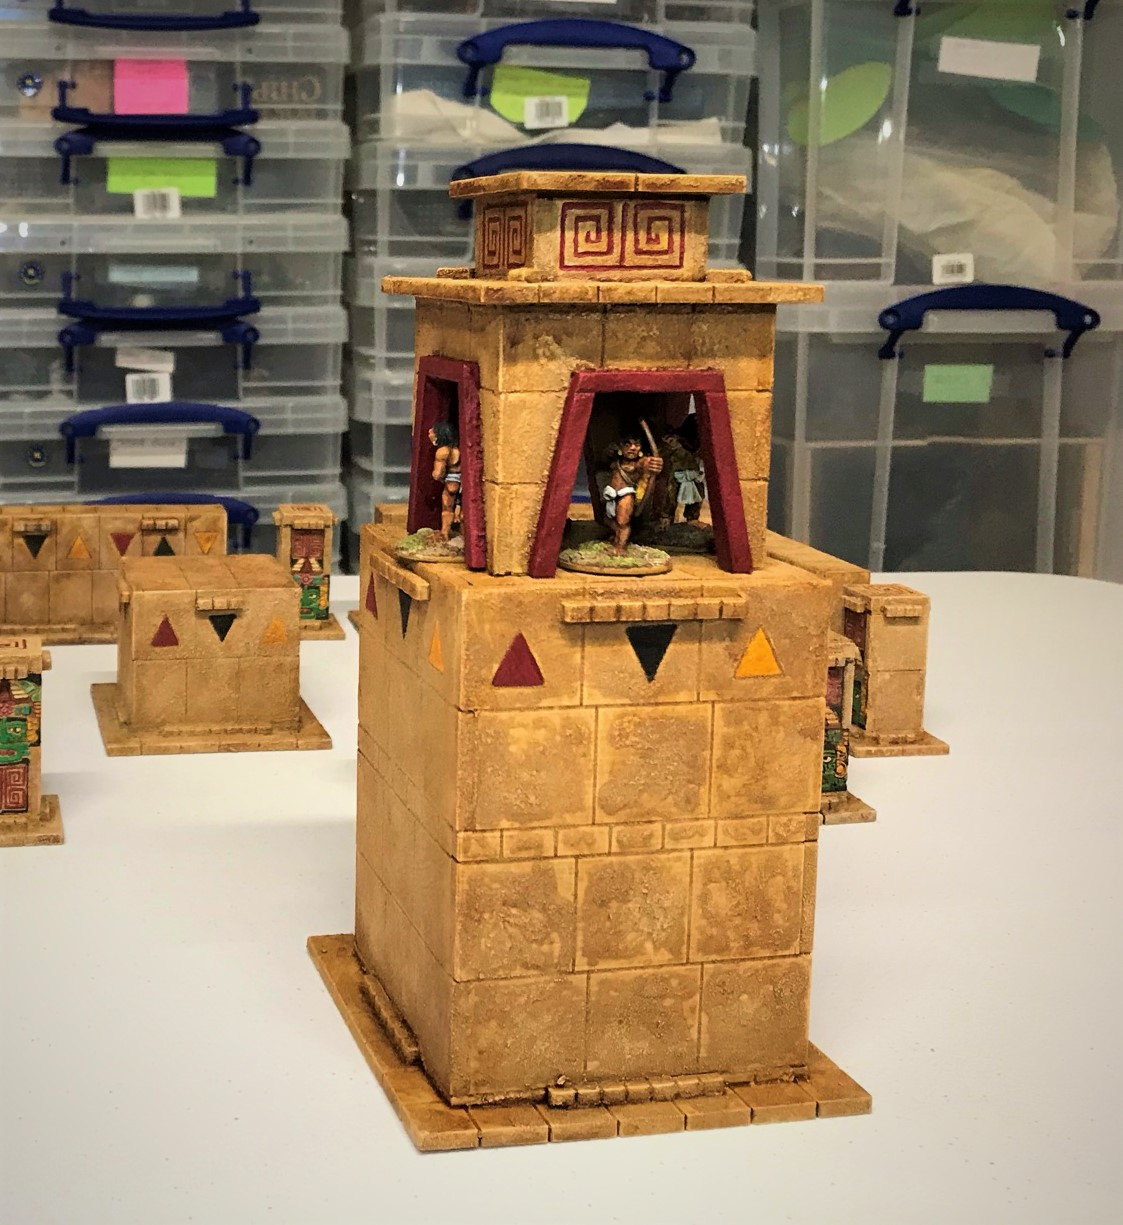 Aztec Temple Sentinel Tower & a Challenge Update